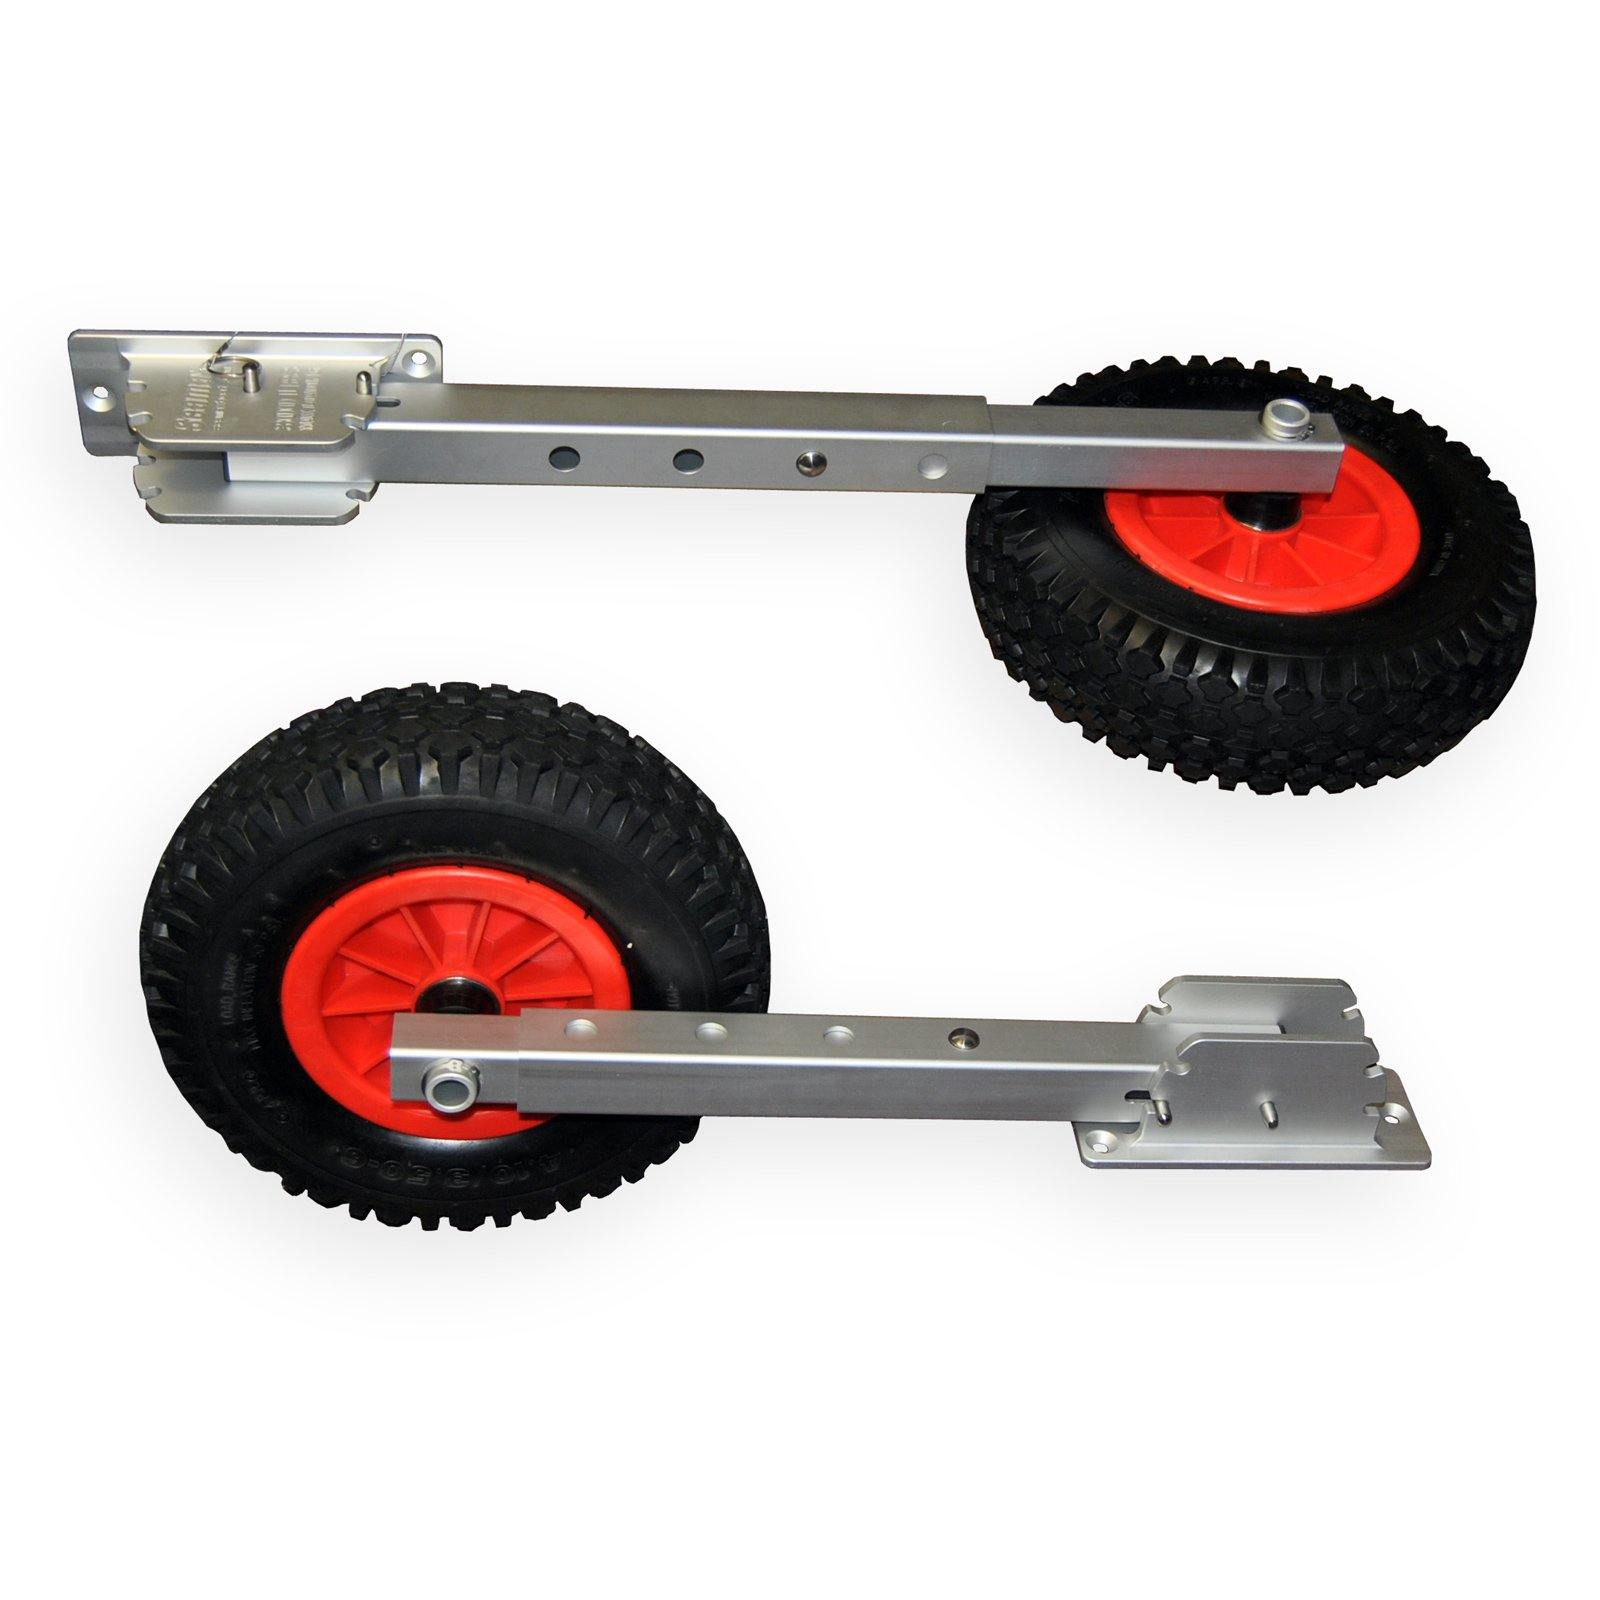 Jon Boat Launch Wheels : Seamax deluxe boat launching dolly with inches wheels